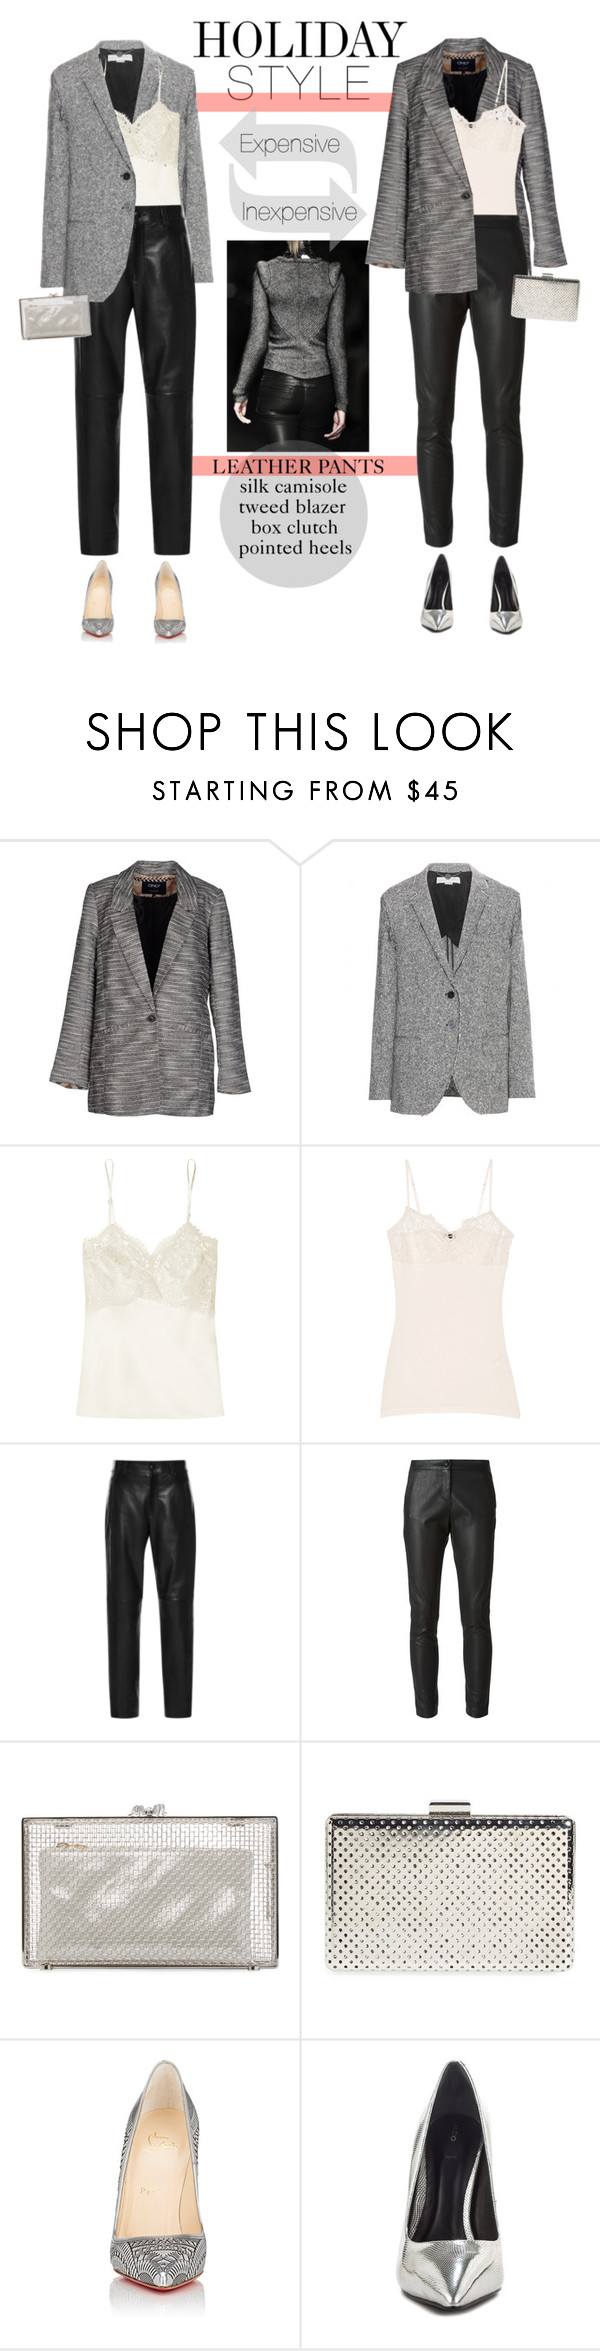 """Masculine vs. Feminine"" by p-for-paola ❤ liked on Polyvore featuring ONLY, STELLA McCARTNEY, Olivia von Halle, By Malene Birger, Anthony Vaccarello, Emporio Armani, Charlotte Olympia, Sole Society, Christian Louboutin and ALDO"